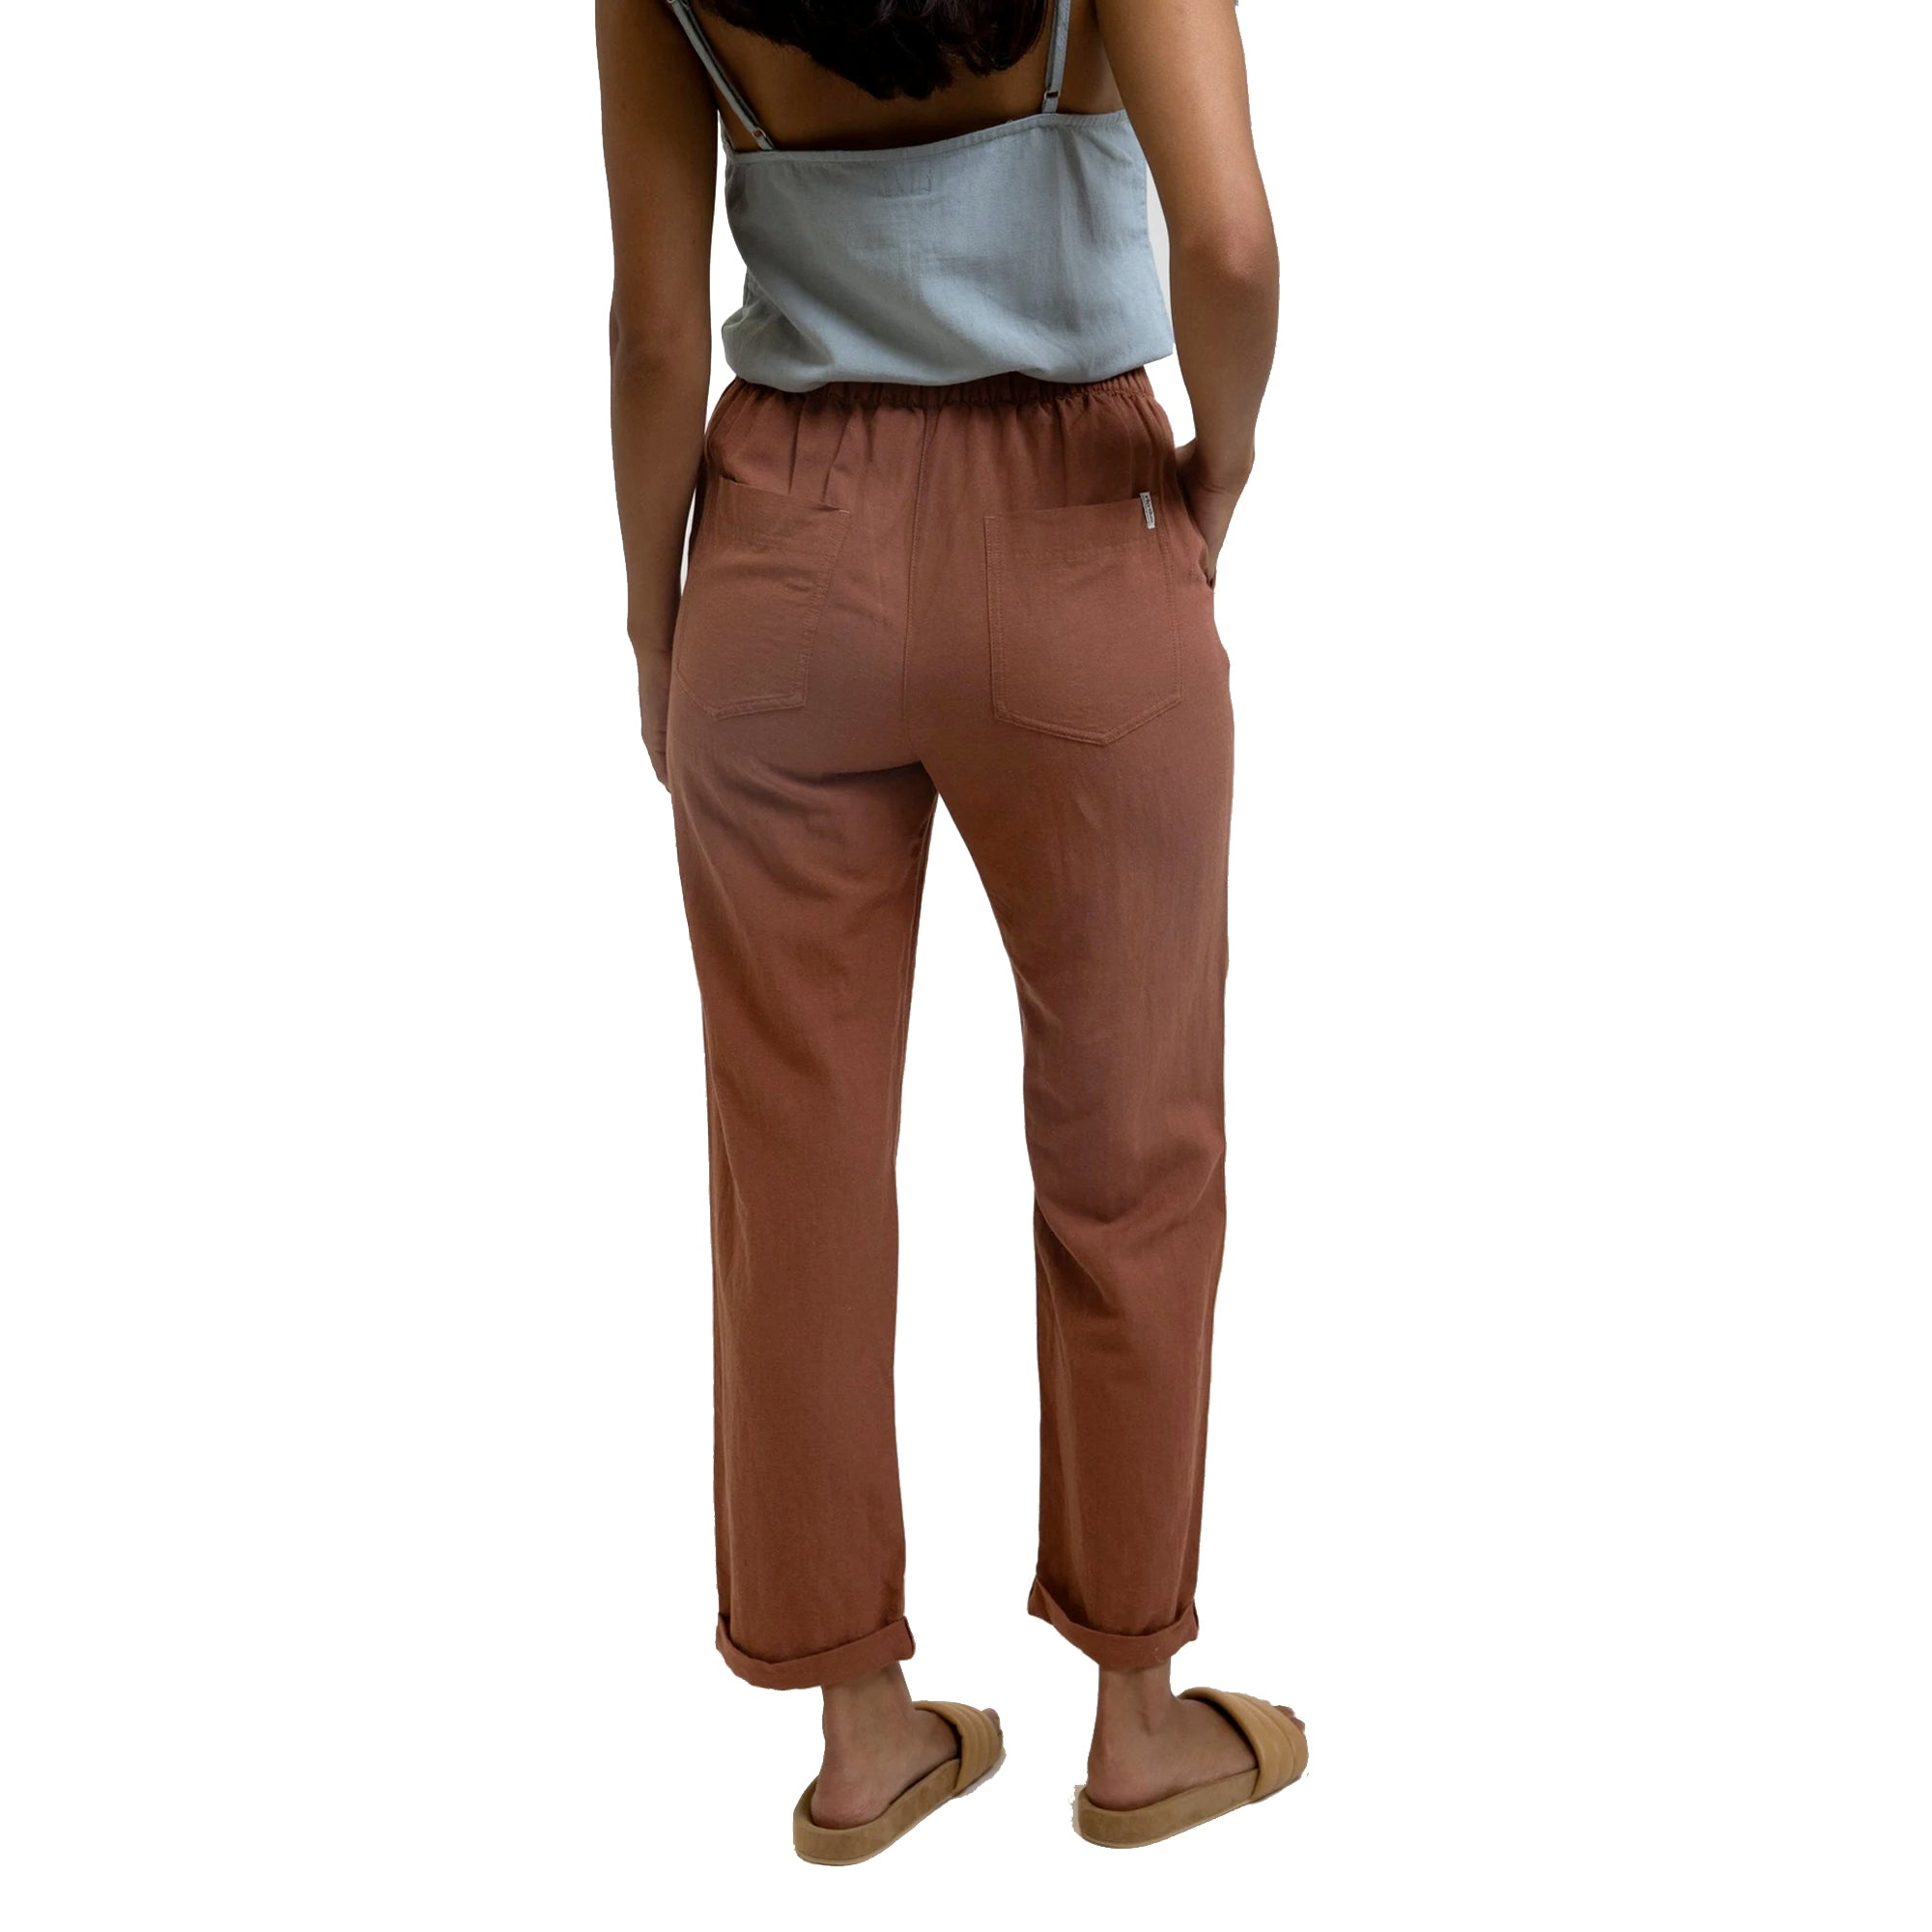 Rhythm Coastline Women's Pants